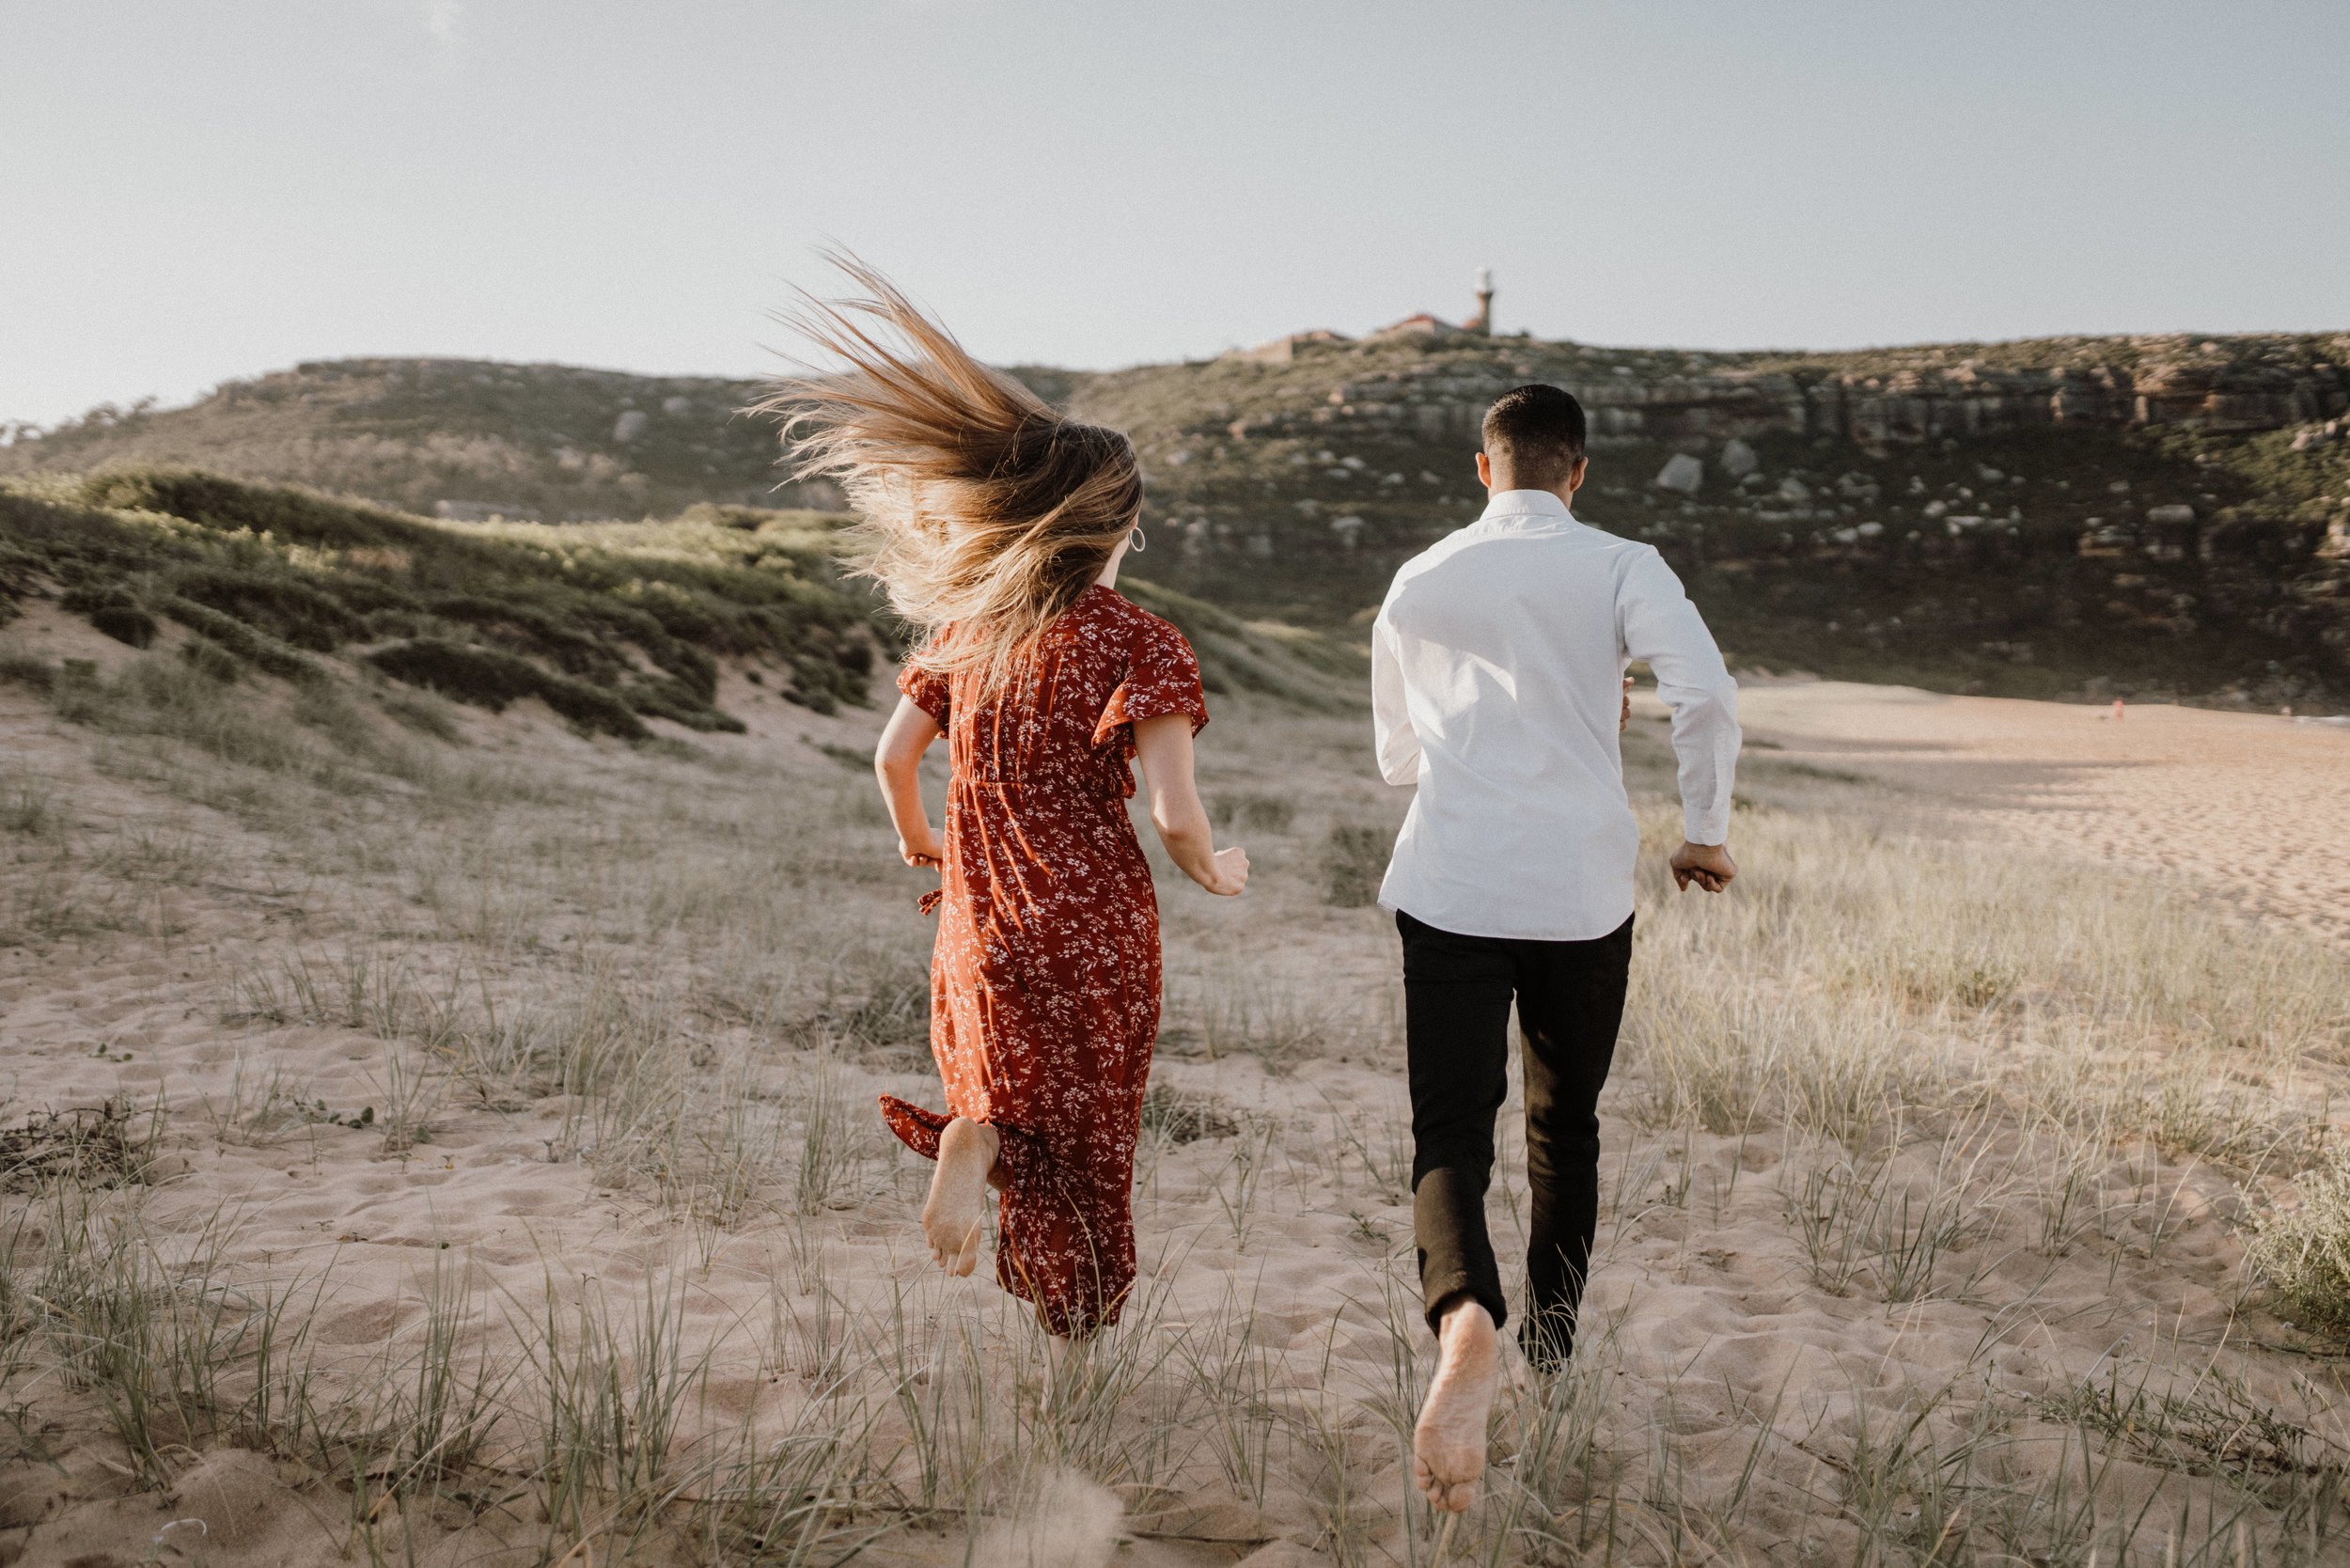 COUPLES ADVENTURES - Let's go on an adventure together. Whether its from your couch to a cafe or a long drive to a spectacular mountain. I'm in!Gallery & information >